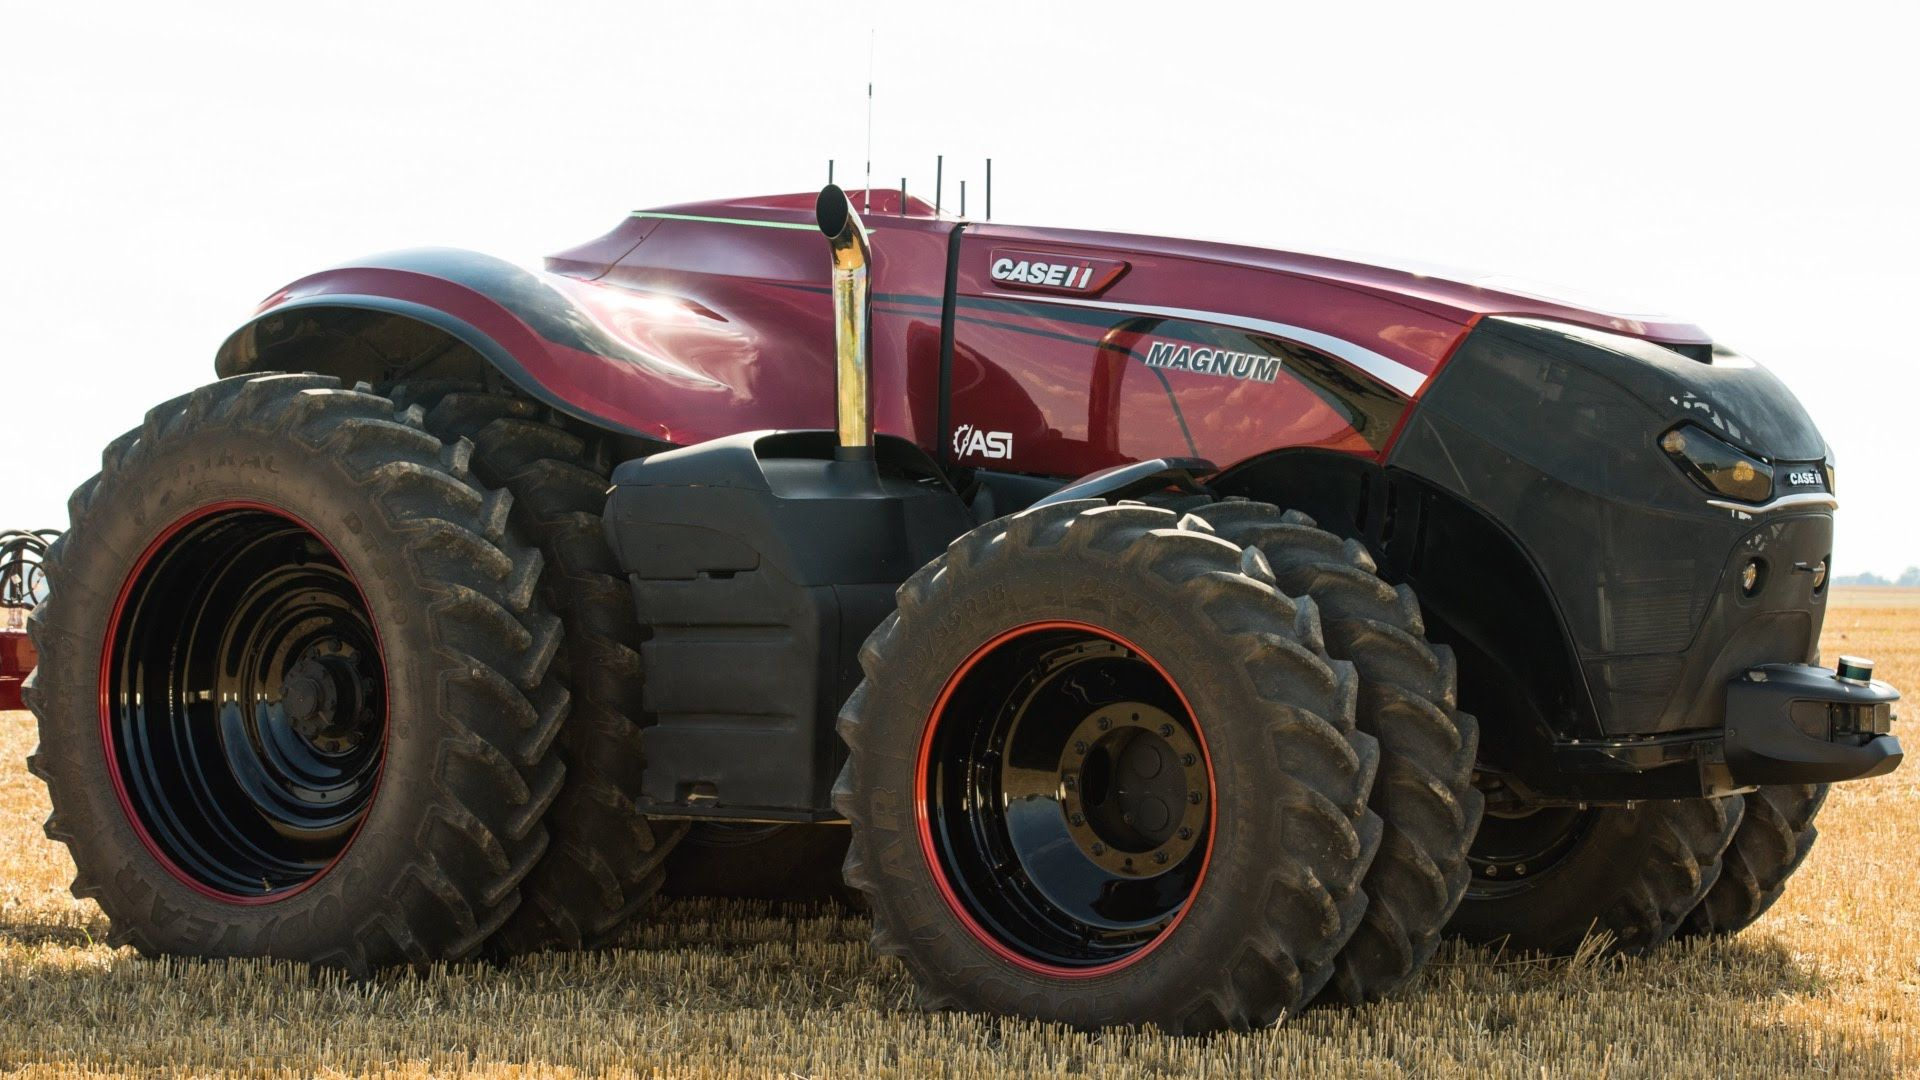 Forget Self-Driving Cars - This Autonomous Tractor Could Be The Next Big...